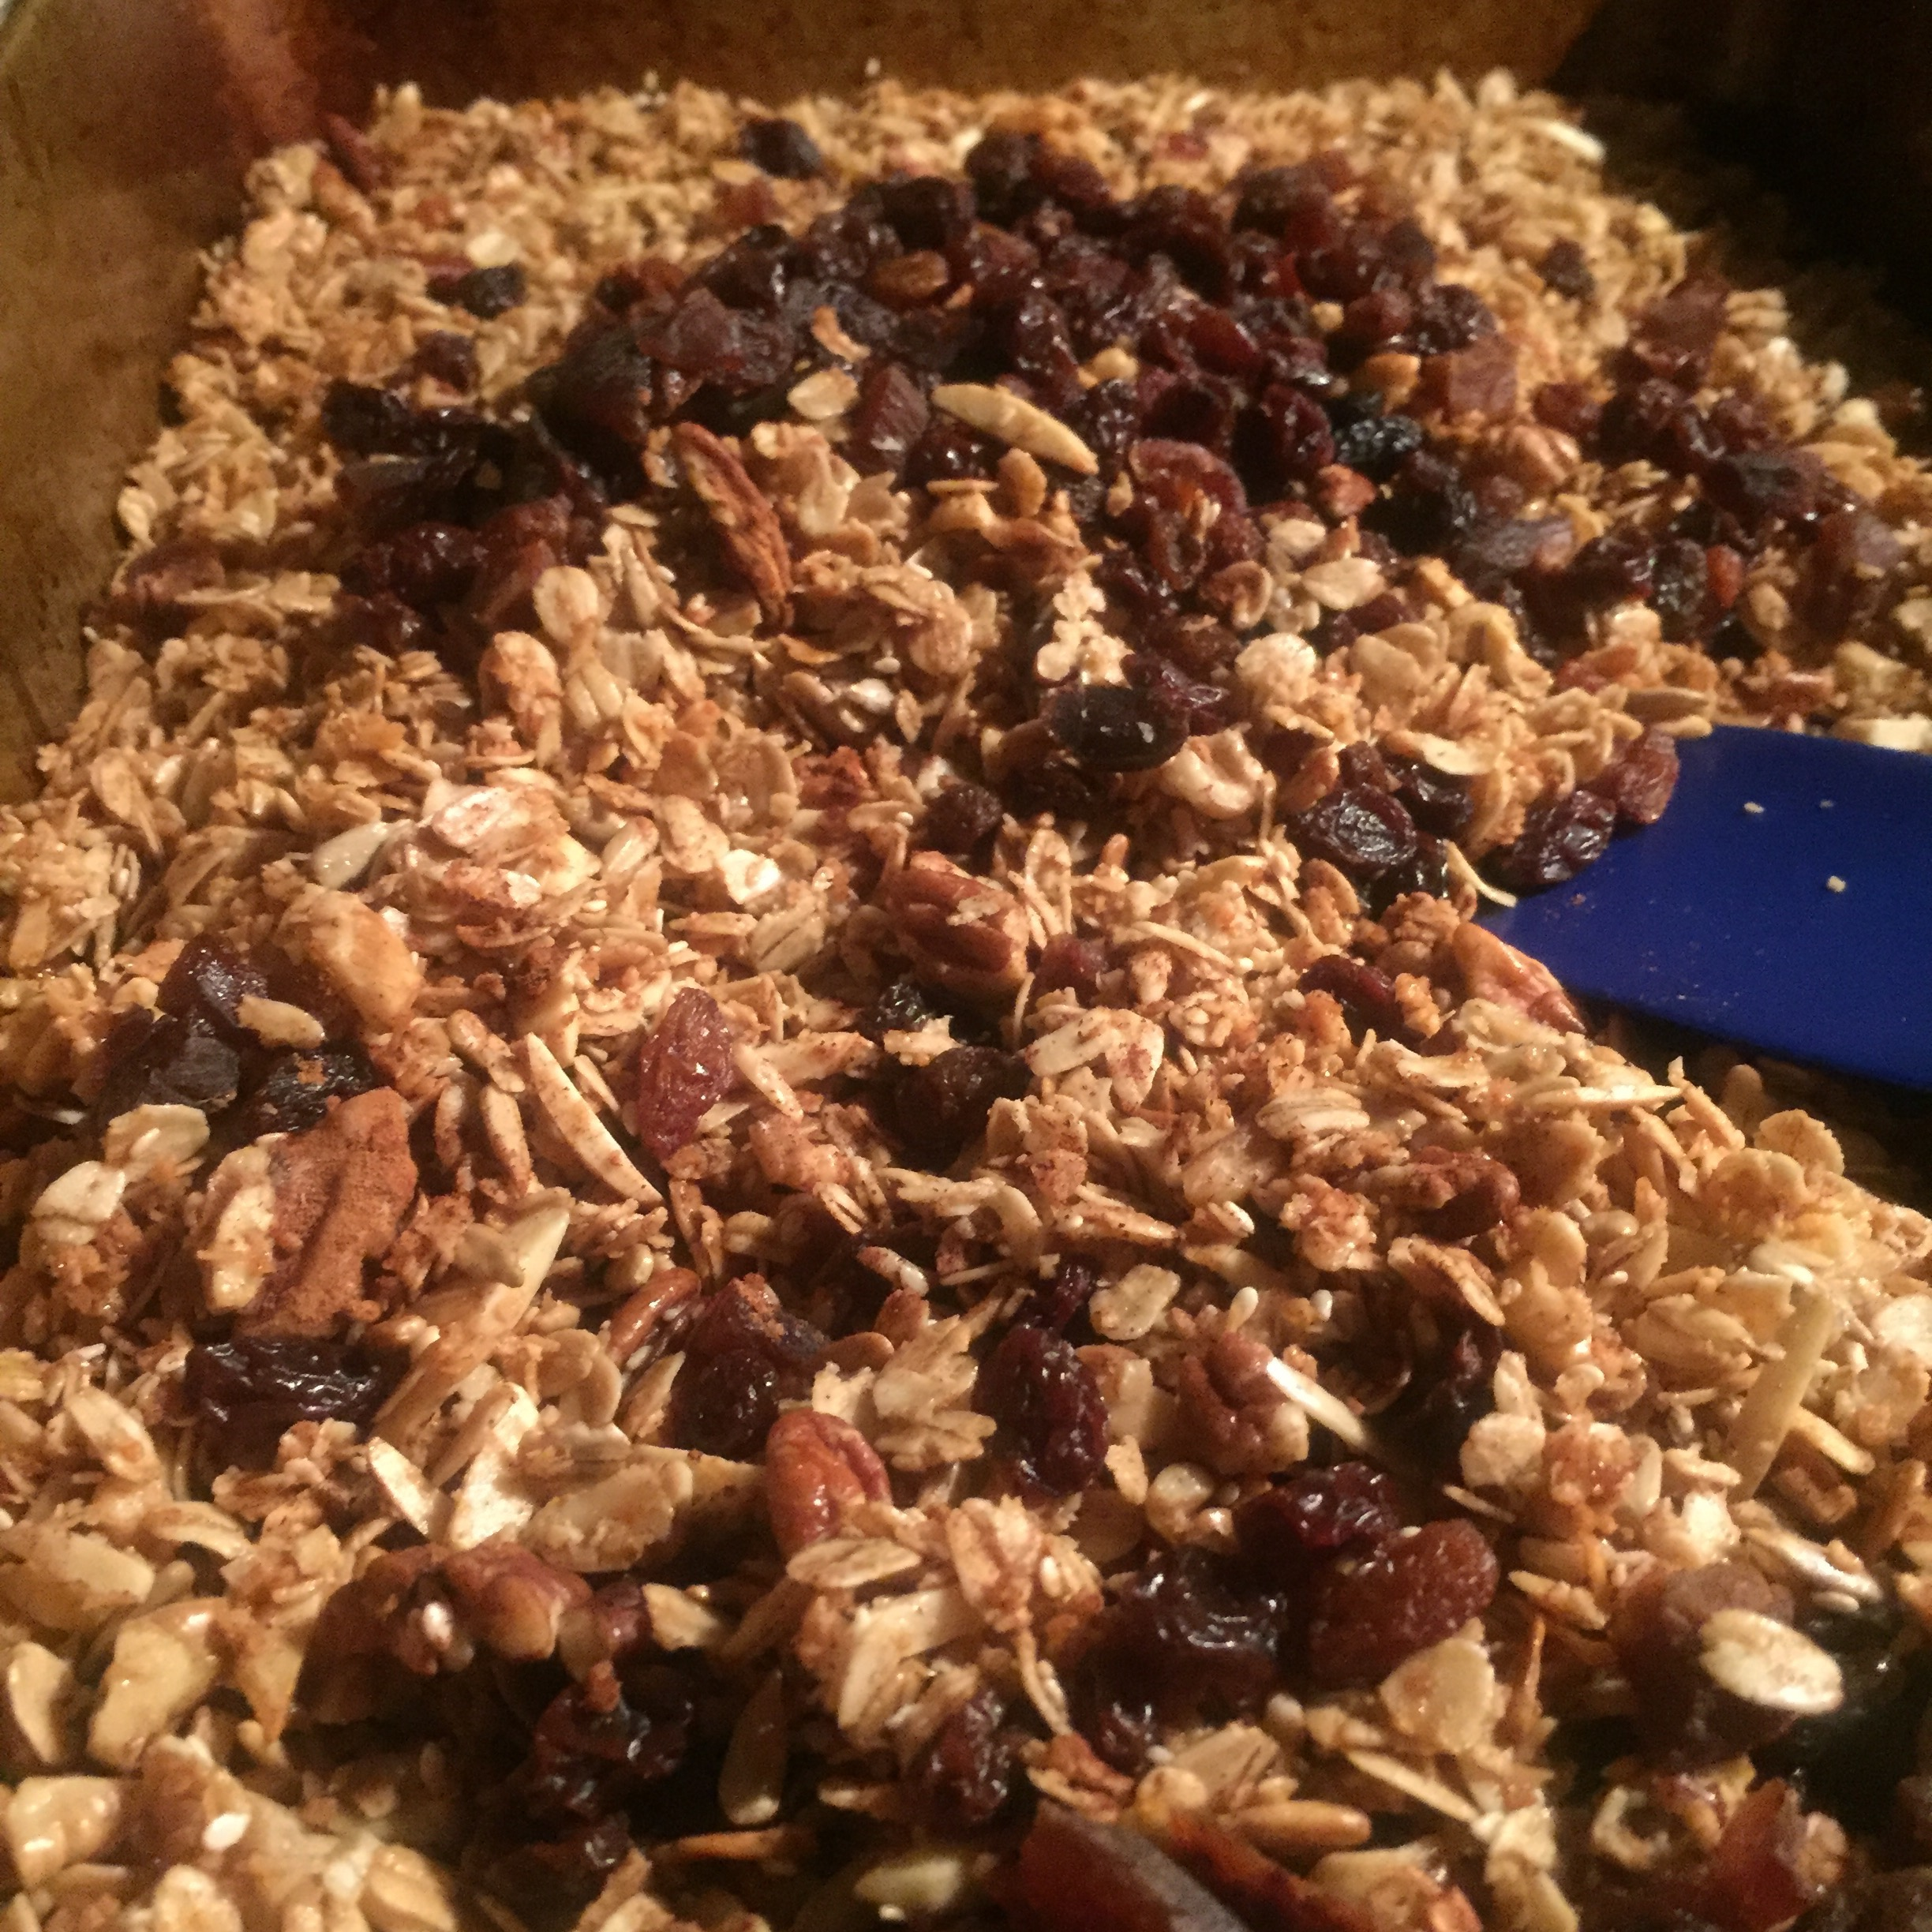 Mix & let cool. - Transfer the granola to another baking sheet or heat proof surface to stop the cooking process (simply lift the granola off the baking sheet using the parchment overhang).Toss the granola with a spatula and mix with 1 cup of dried fruits (such as cranberries, raisins, cherries, chopped apricots, currants, etc. Use your favs!)Spread/press into an even layer, then let cool to room temperature. If stuck together, break the granola into clusters and store in an airtight container.